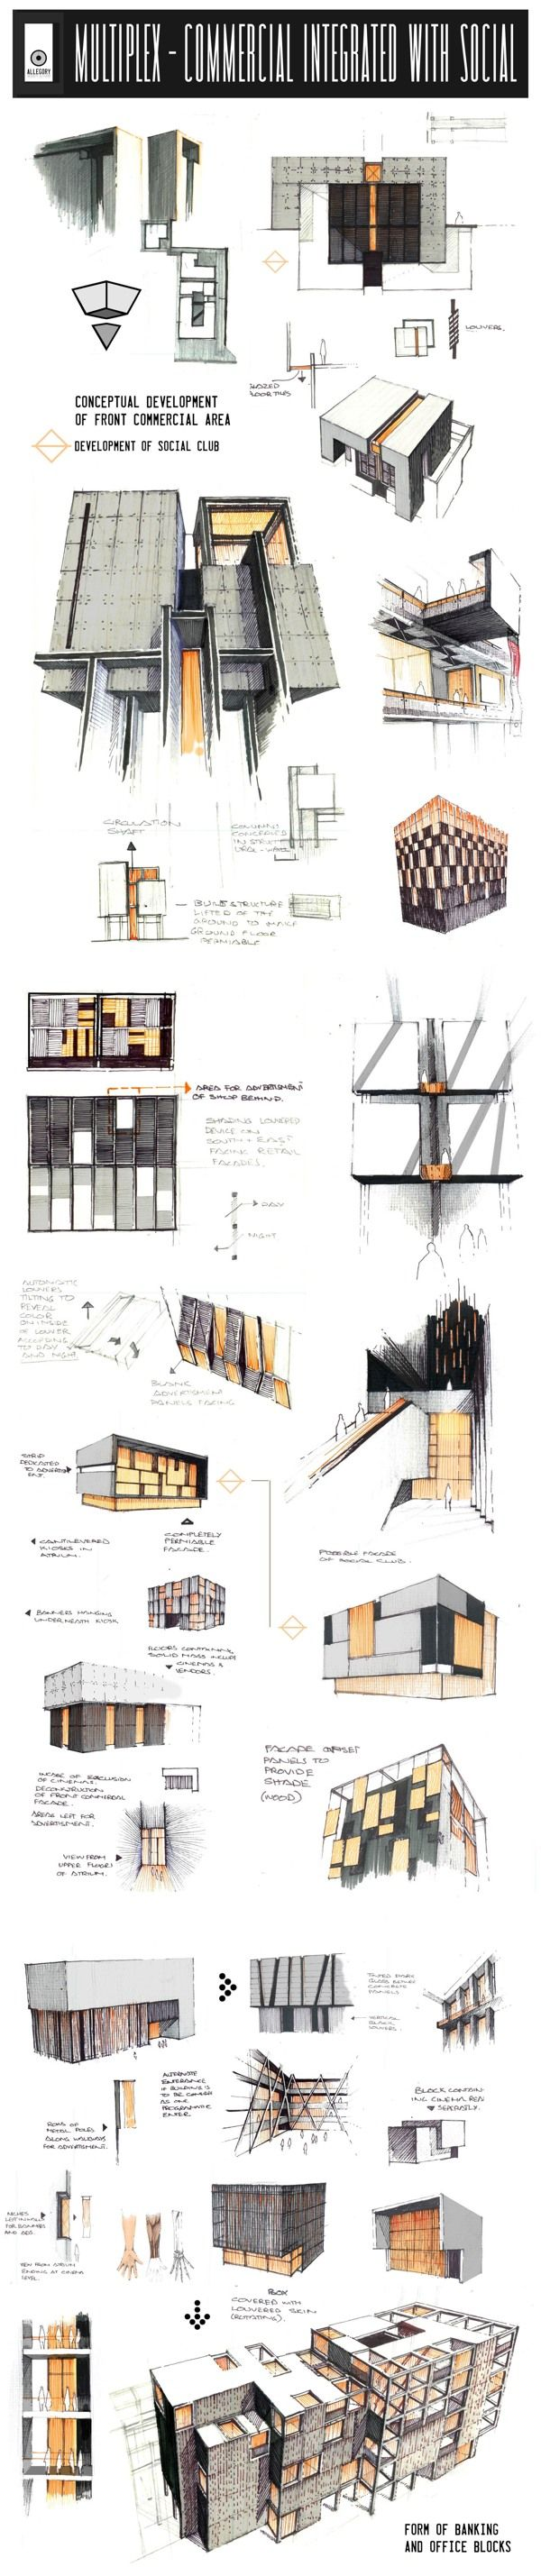 Professional Design Proposals - Under-Development by Anique Azhar, via Behance Lamina de detalles y vistas.